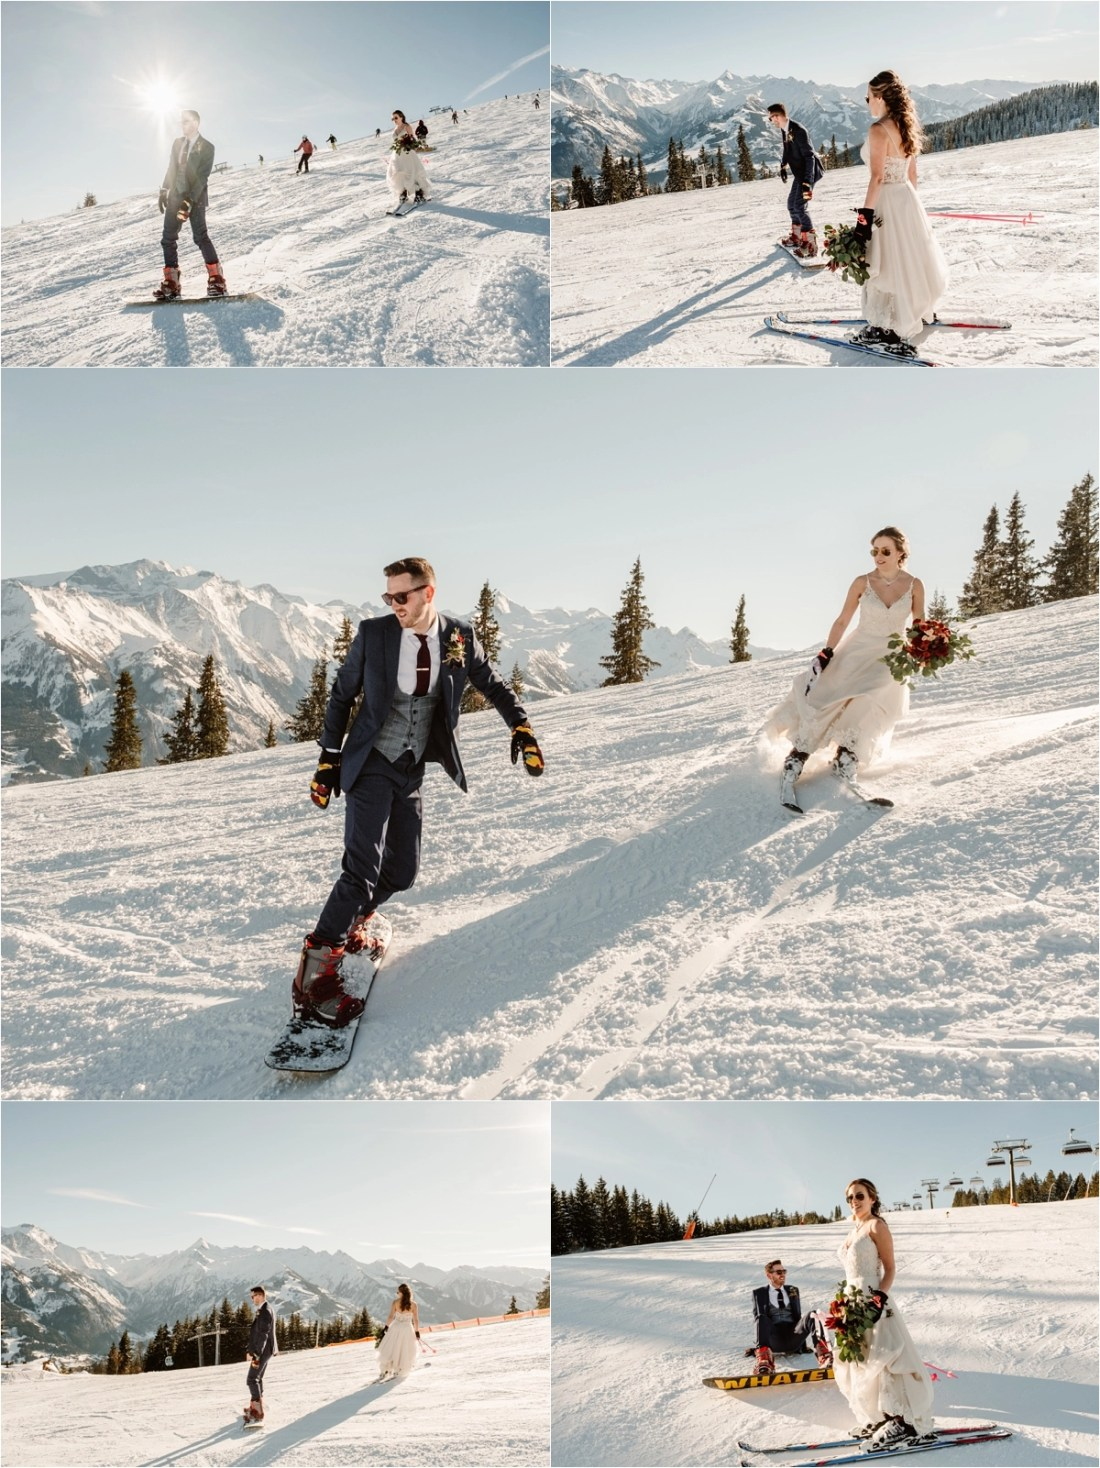 A skiing bride and a snowboarding groom take to the slopes of Zell Am See in Austria captured by Wild Connections Photography